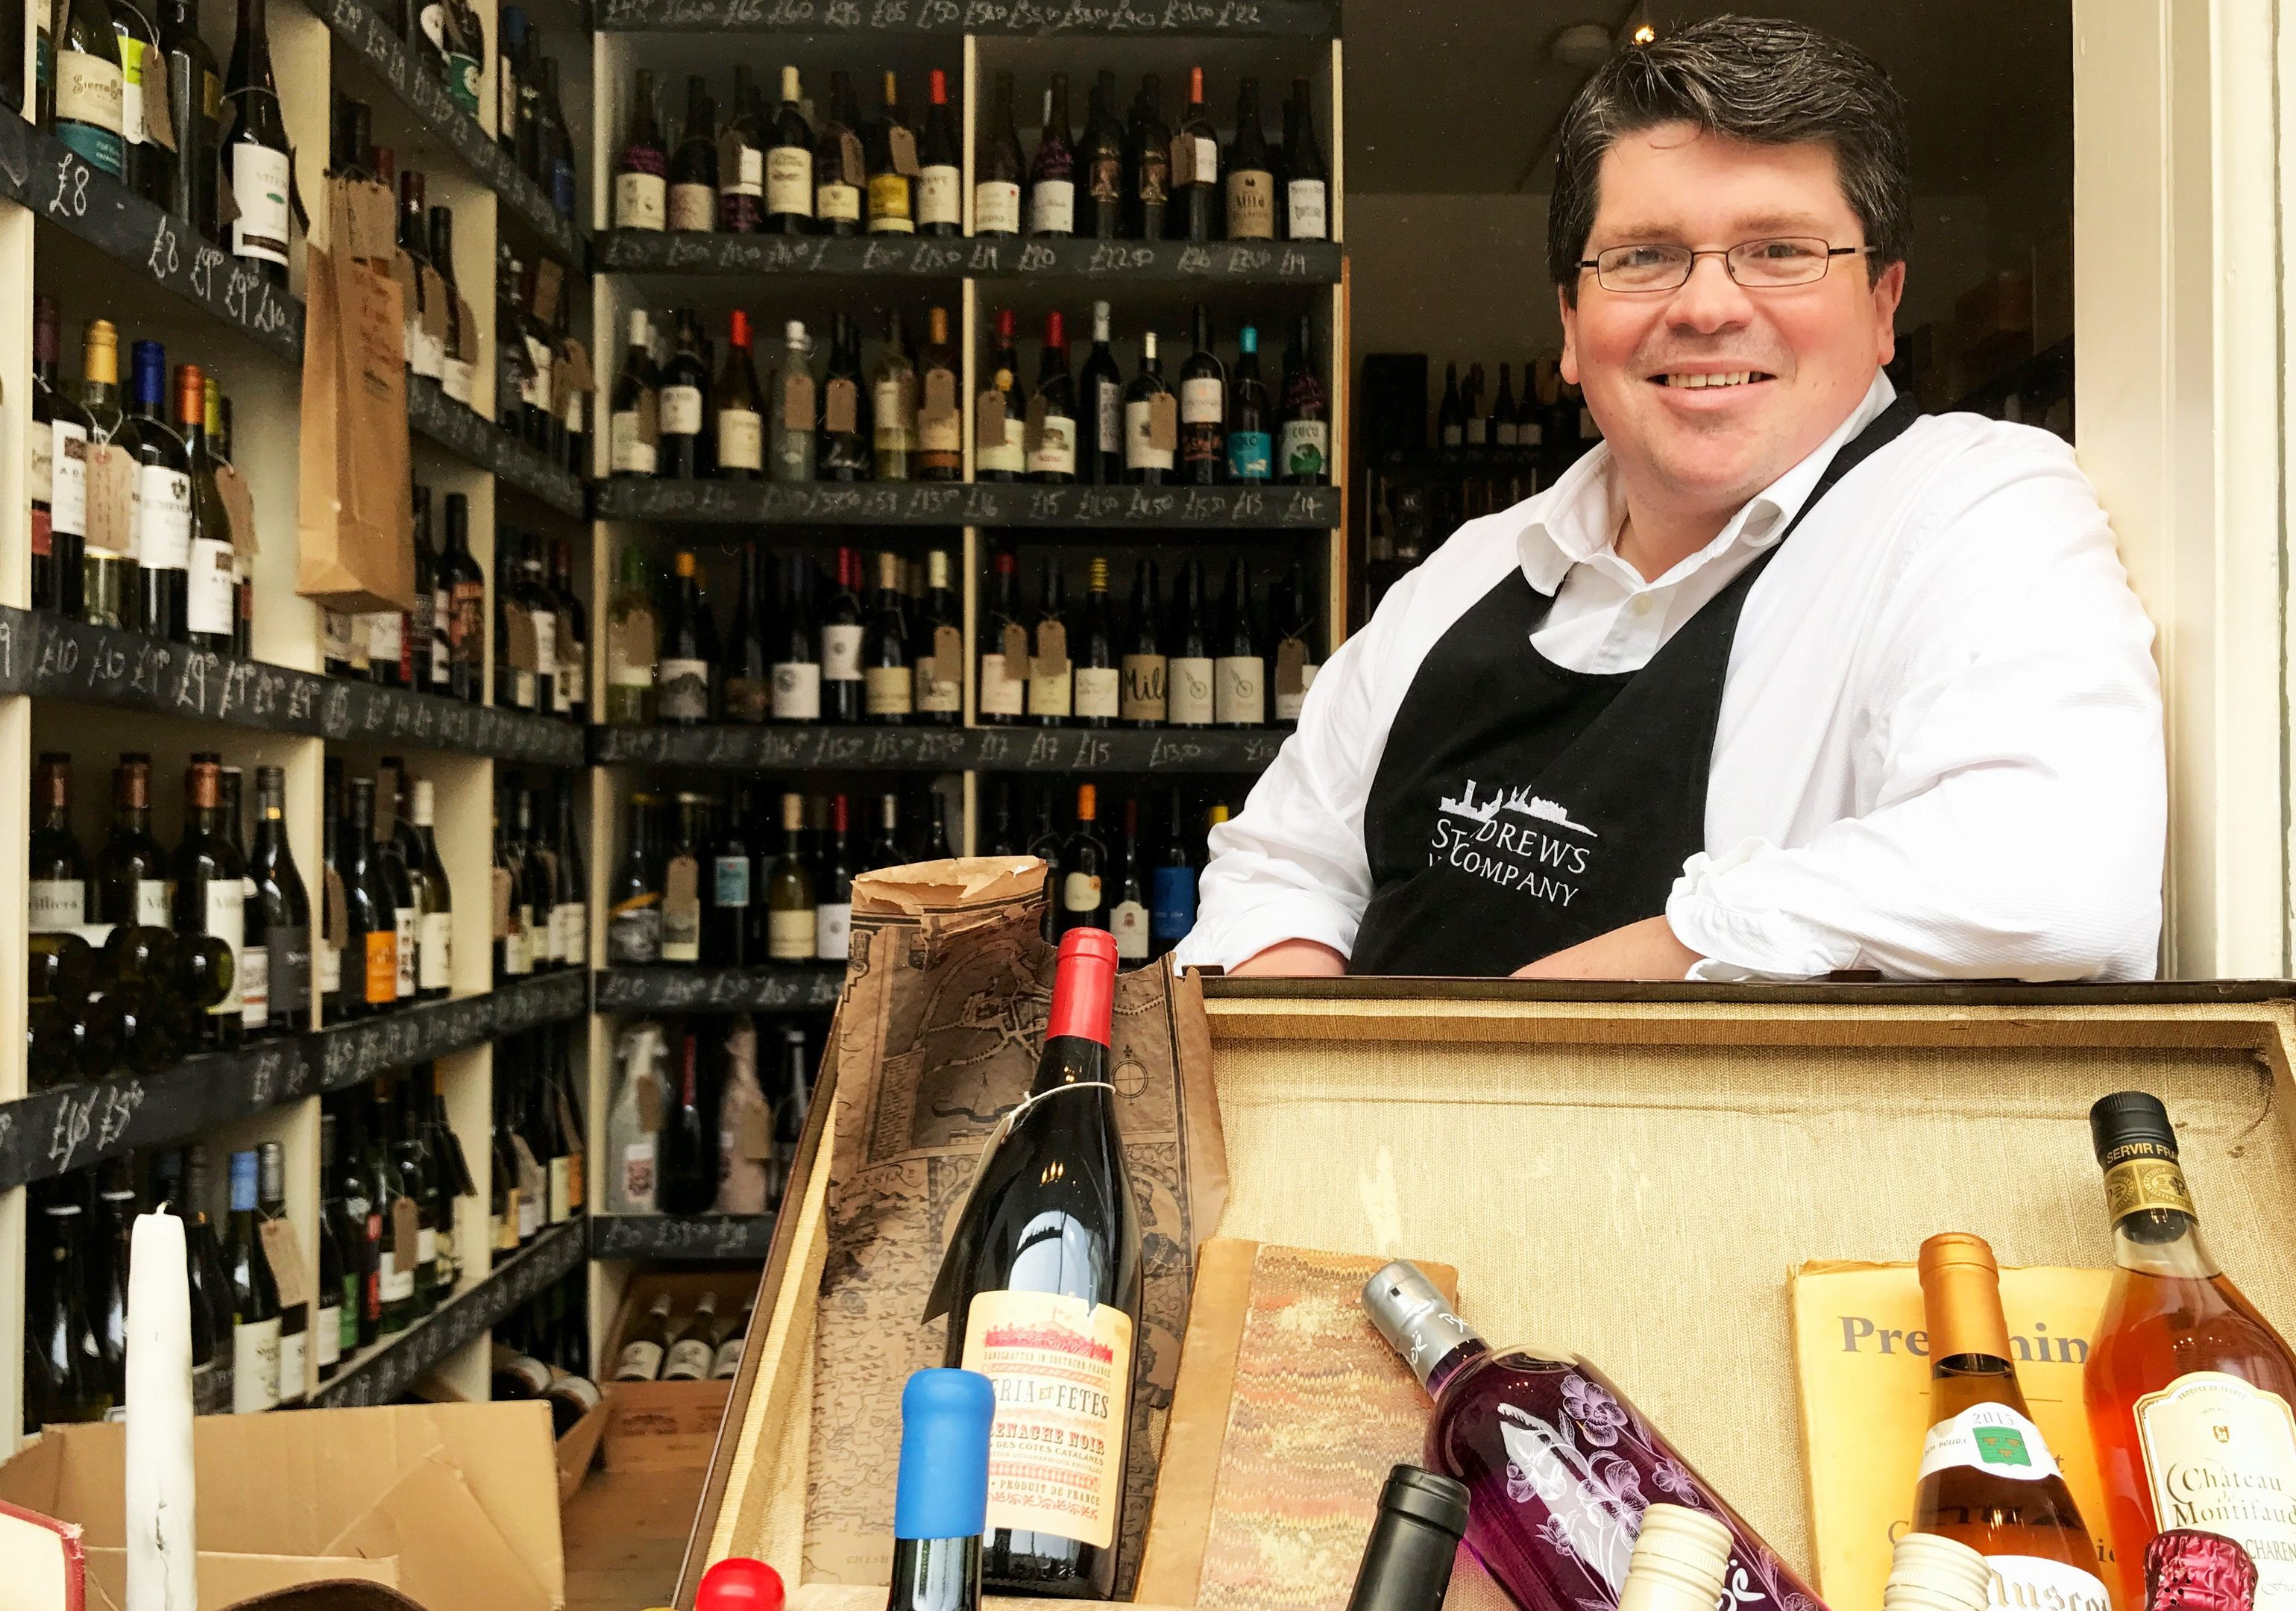 Peter Wood is founder of the St Andrews Wine Company